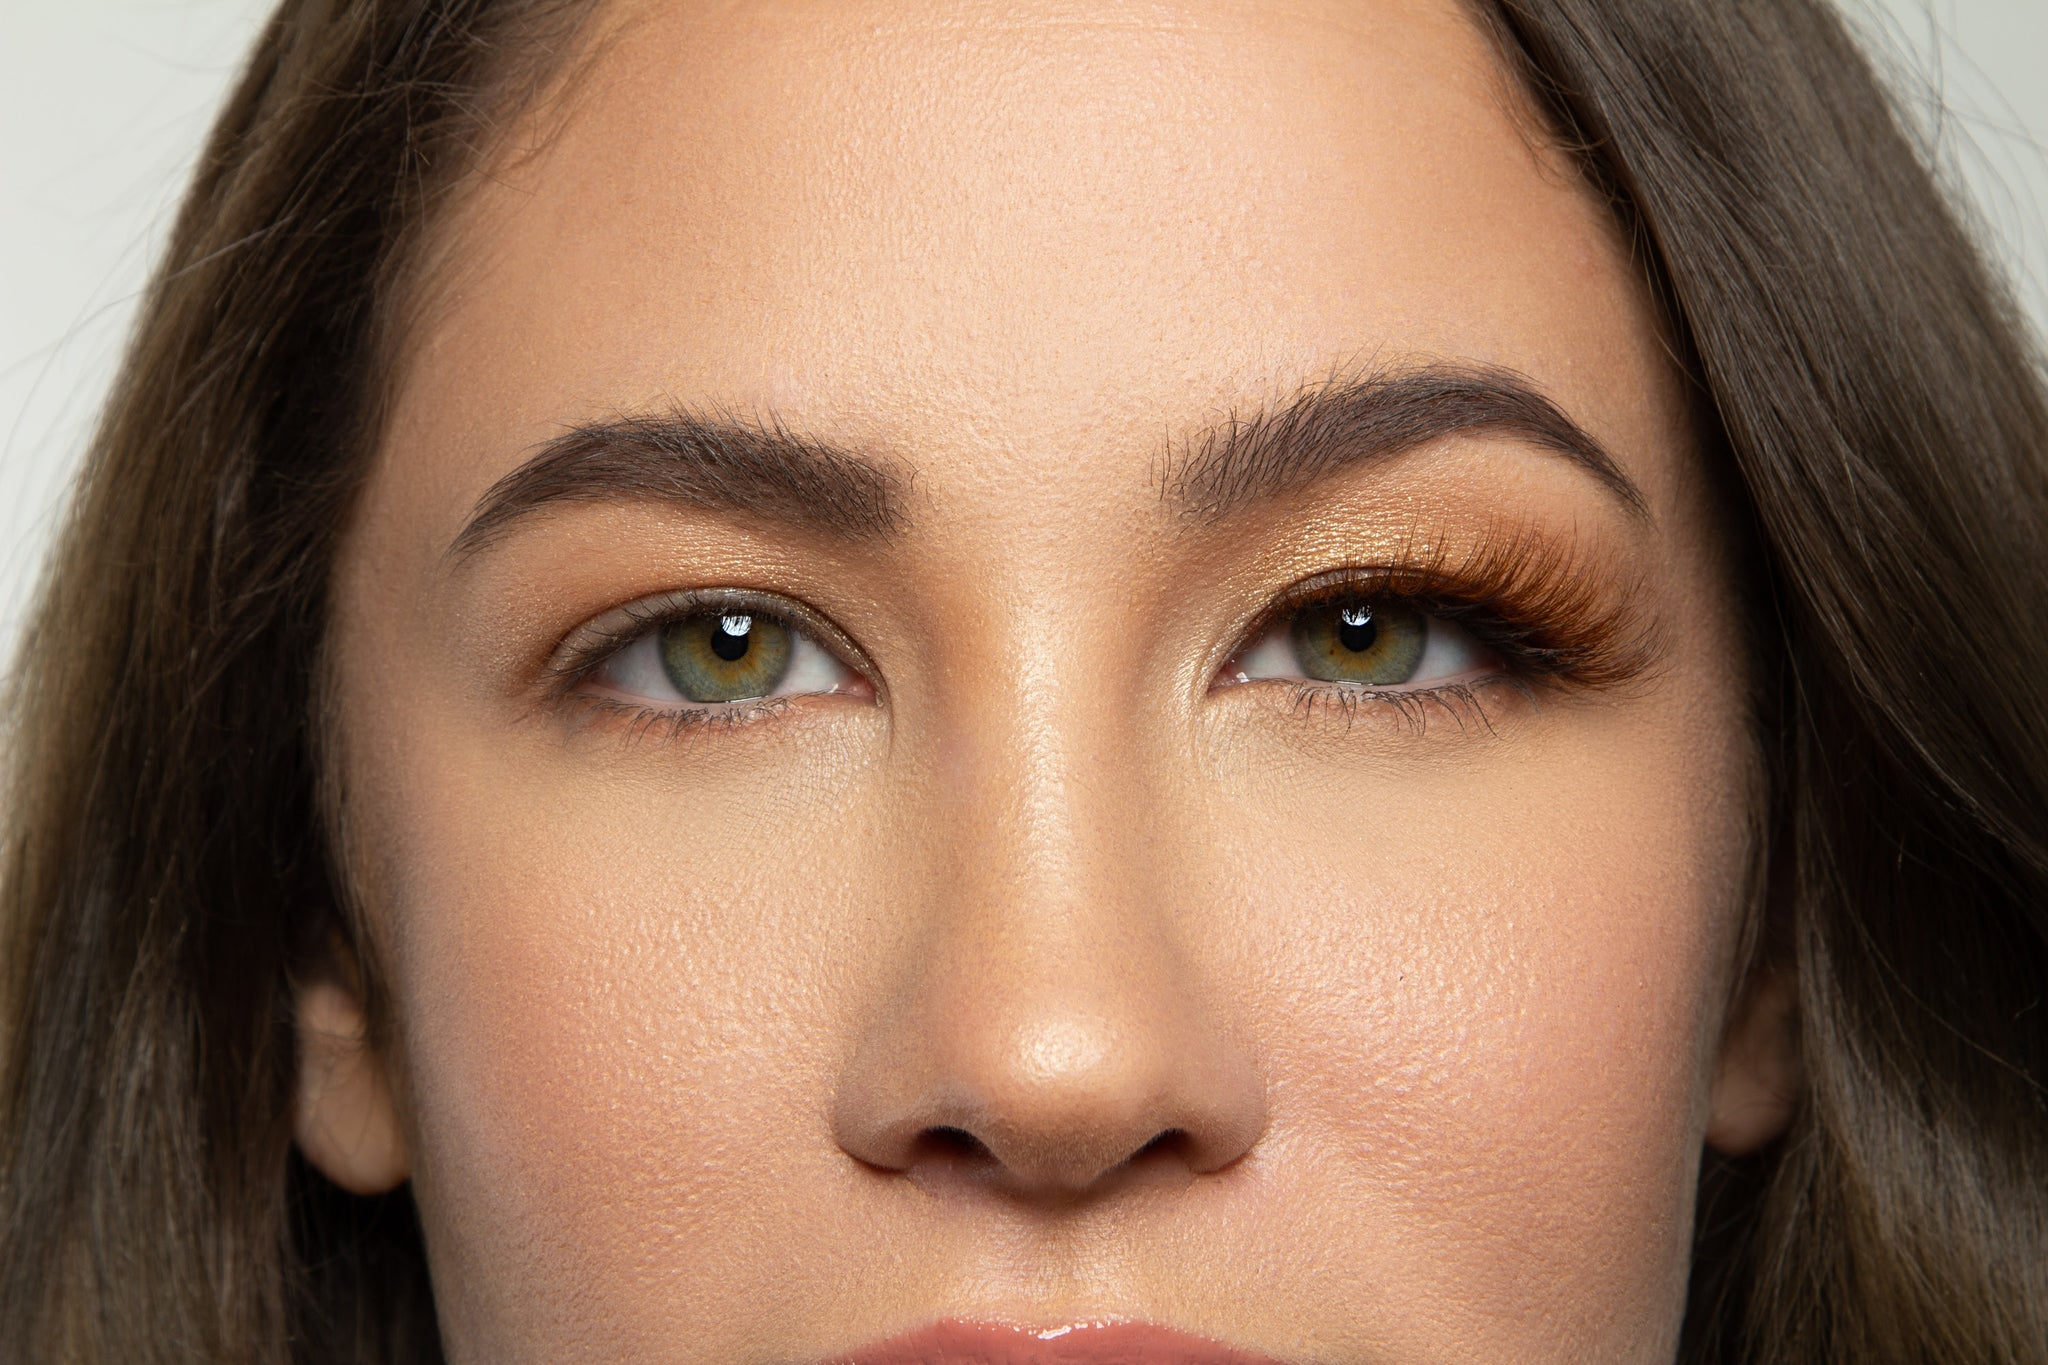 Surgary brown magnetic lash has soft tapered ends that open and elevate any eye shape.